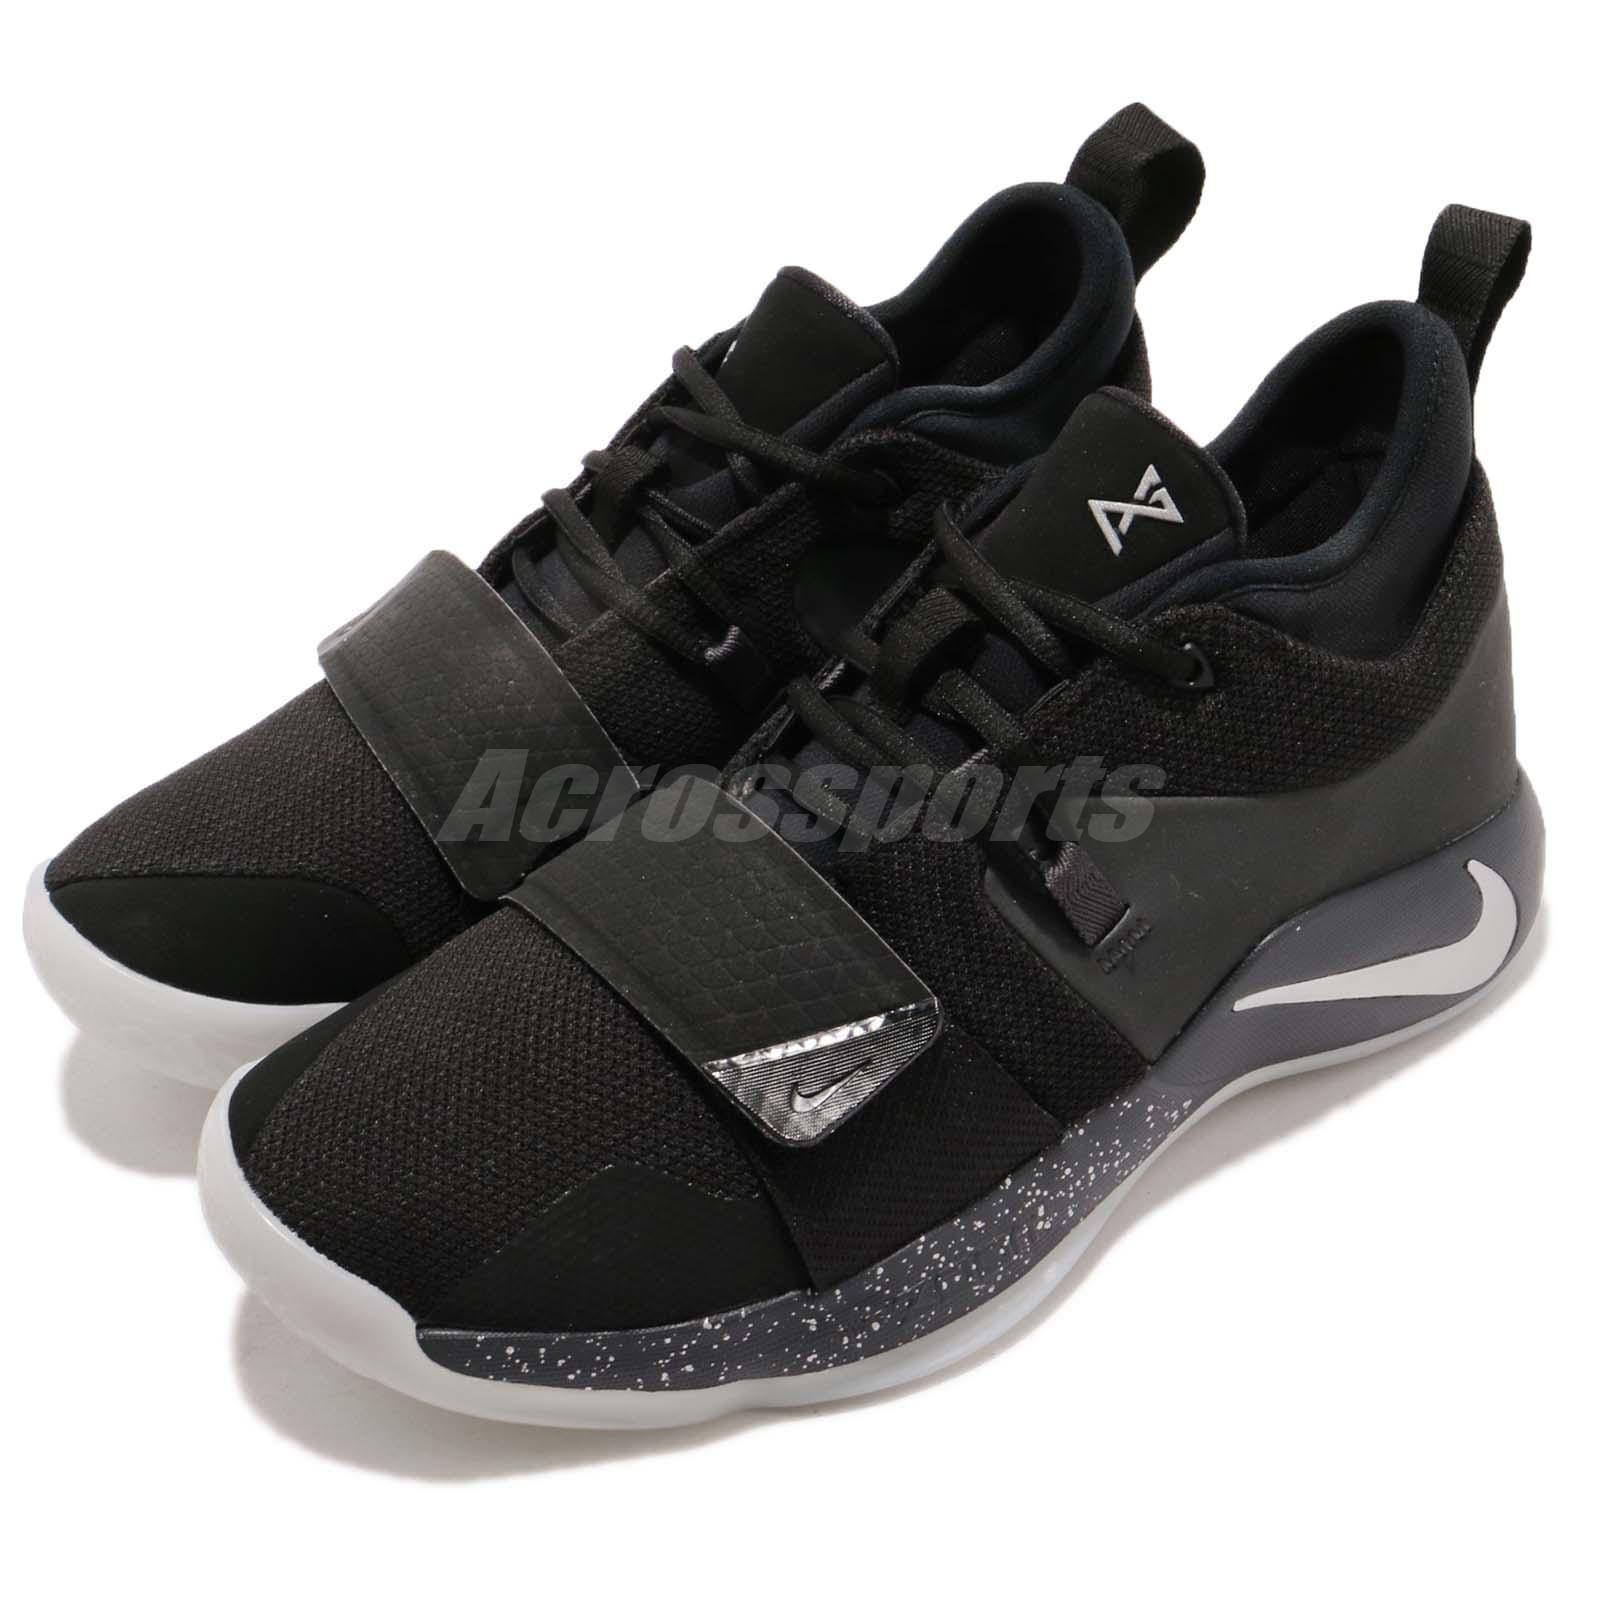 a7c792040 Details about Nike PG 2.5 EP Paul George Anthracite Black Men Basketball  Shoes BQ8453-004